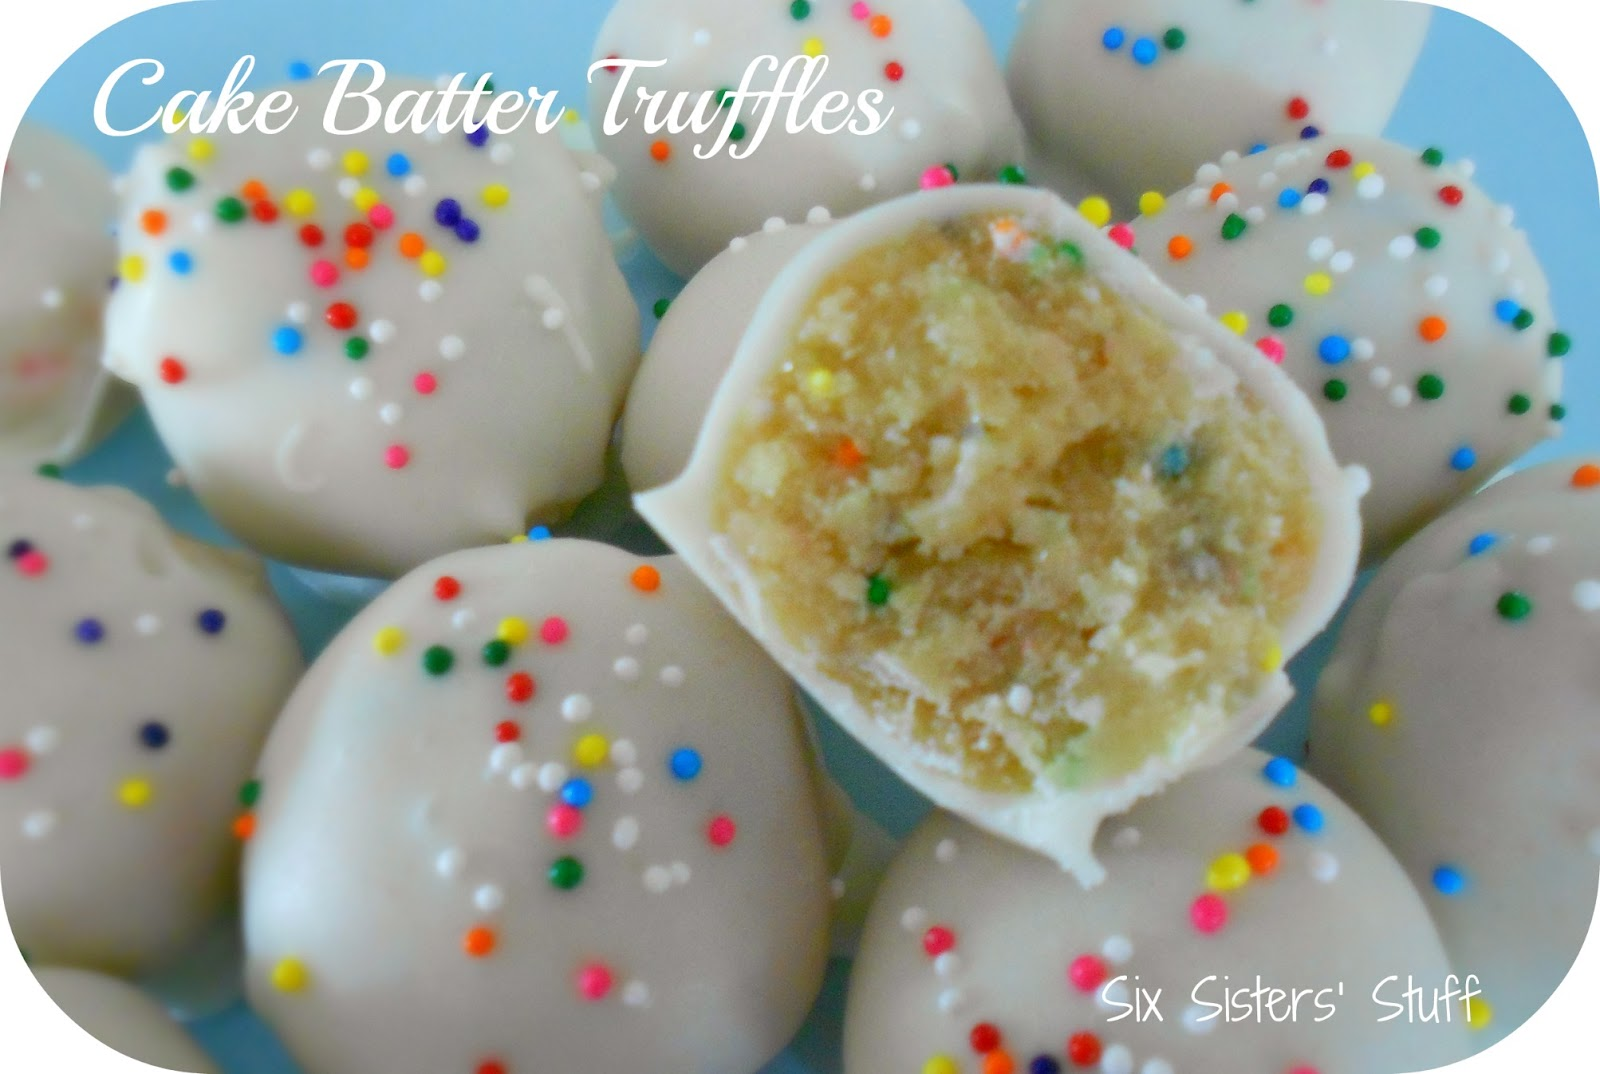 Cake Ball Recipes With Yellow Cake Mix